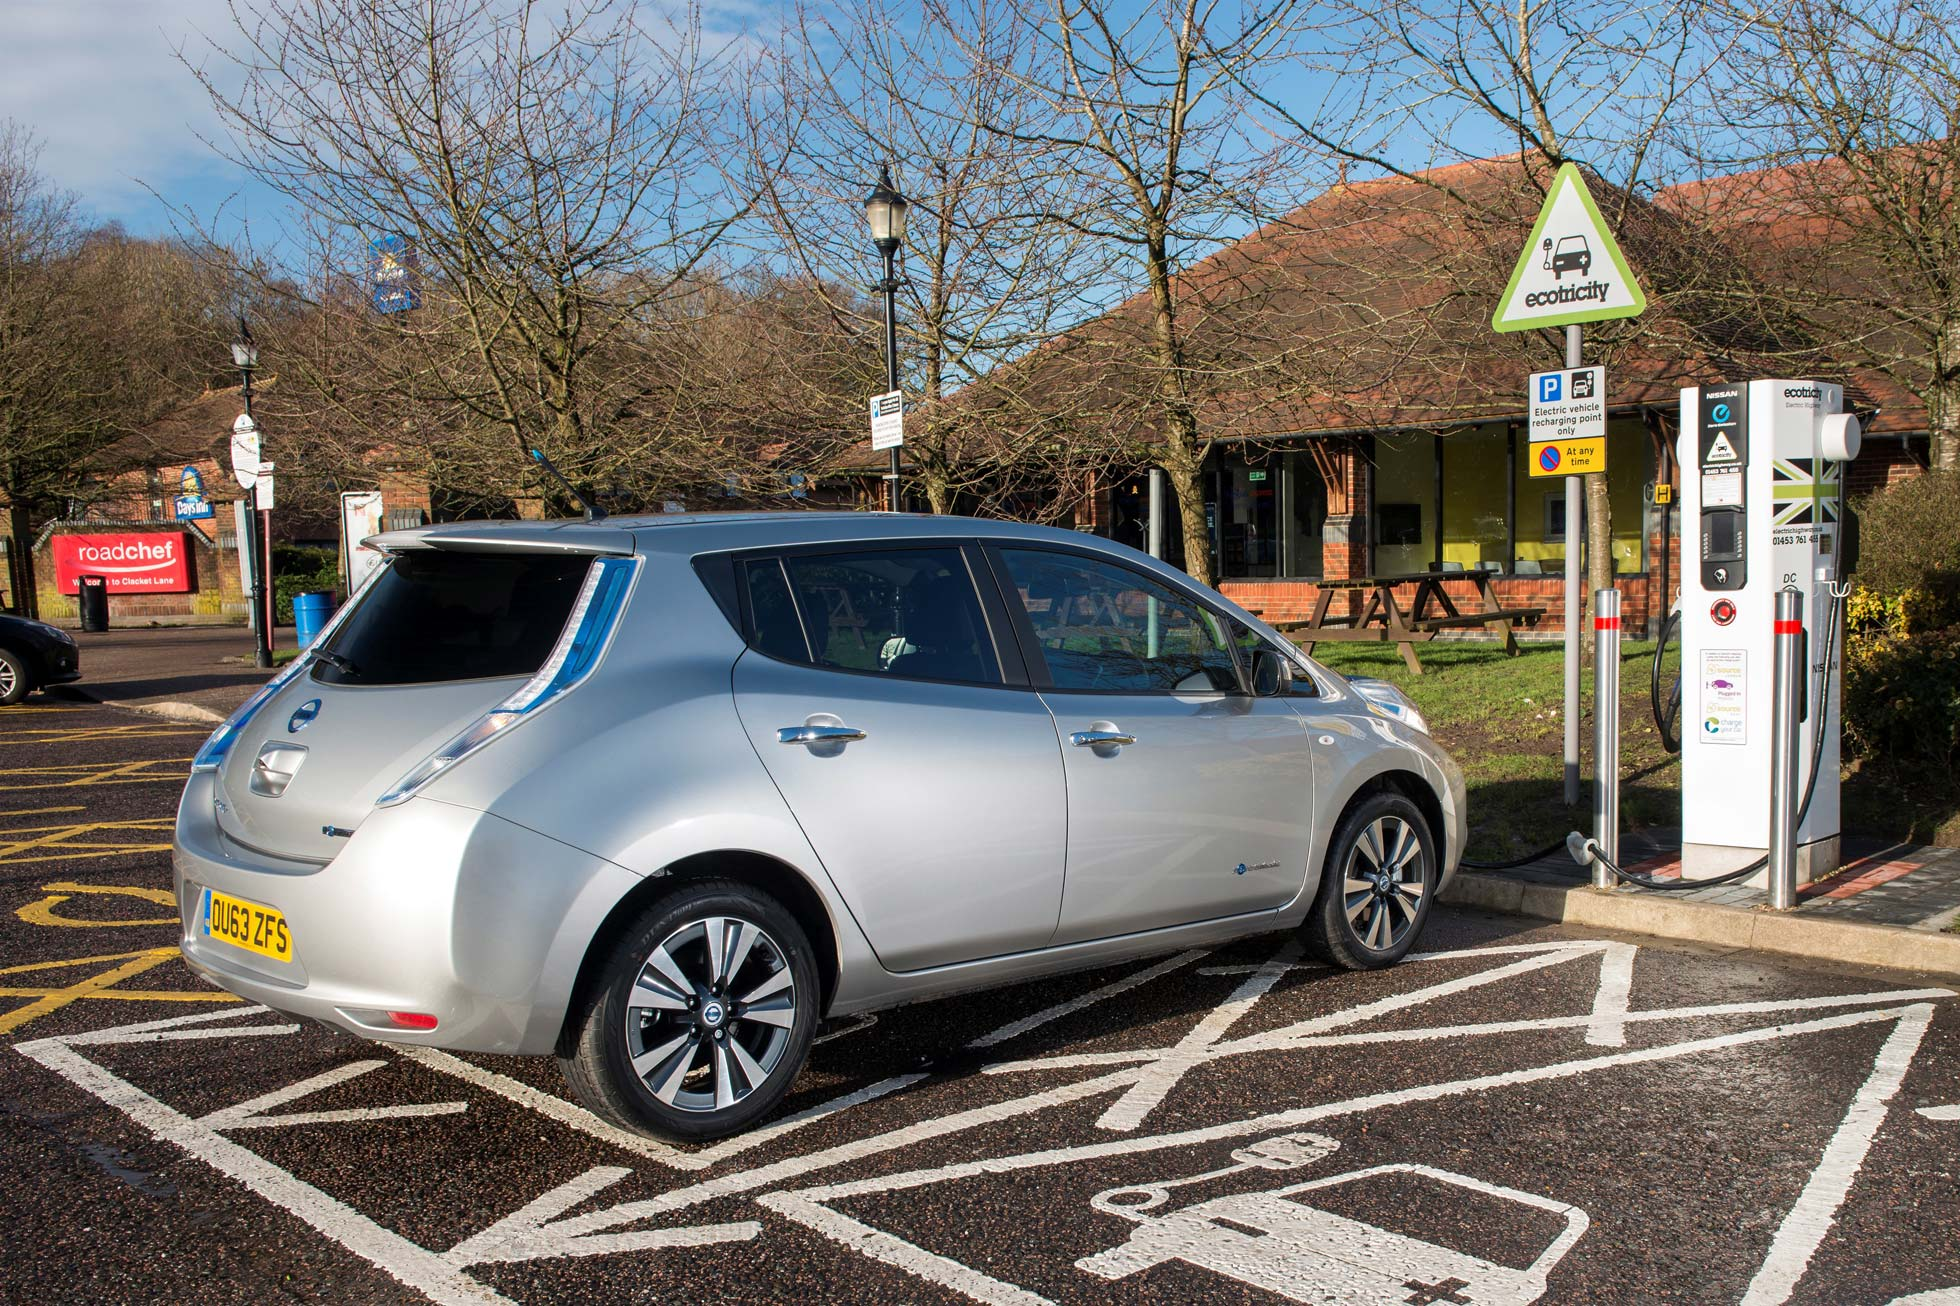 UK drivers divided over increase in electric car charging points